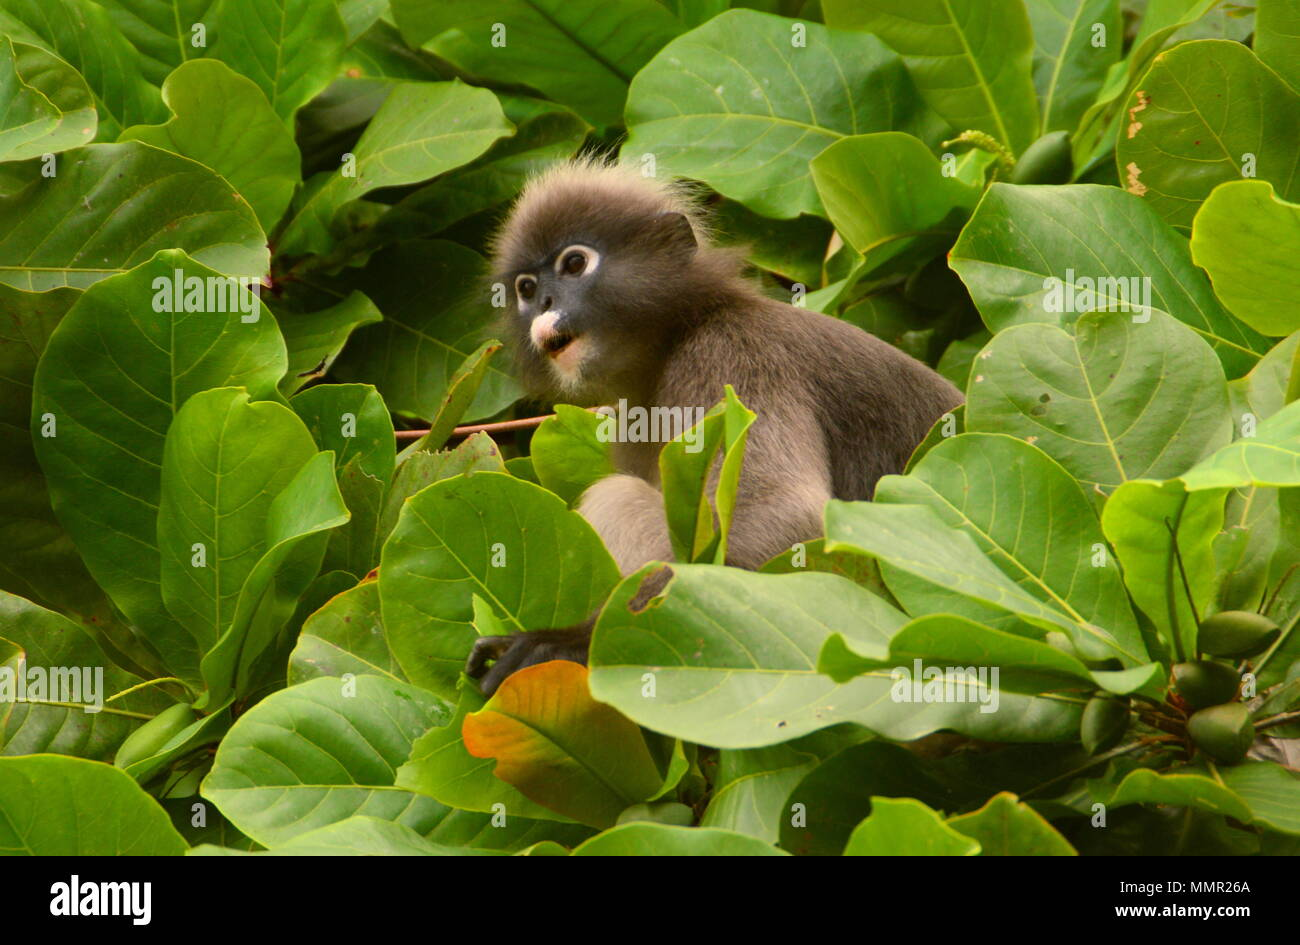 Spectacled Leaf Monkey In Leafy Tree - Stock Image